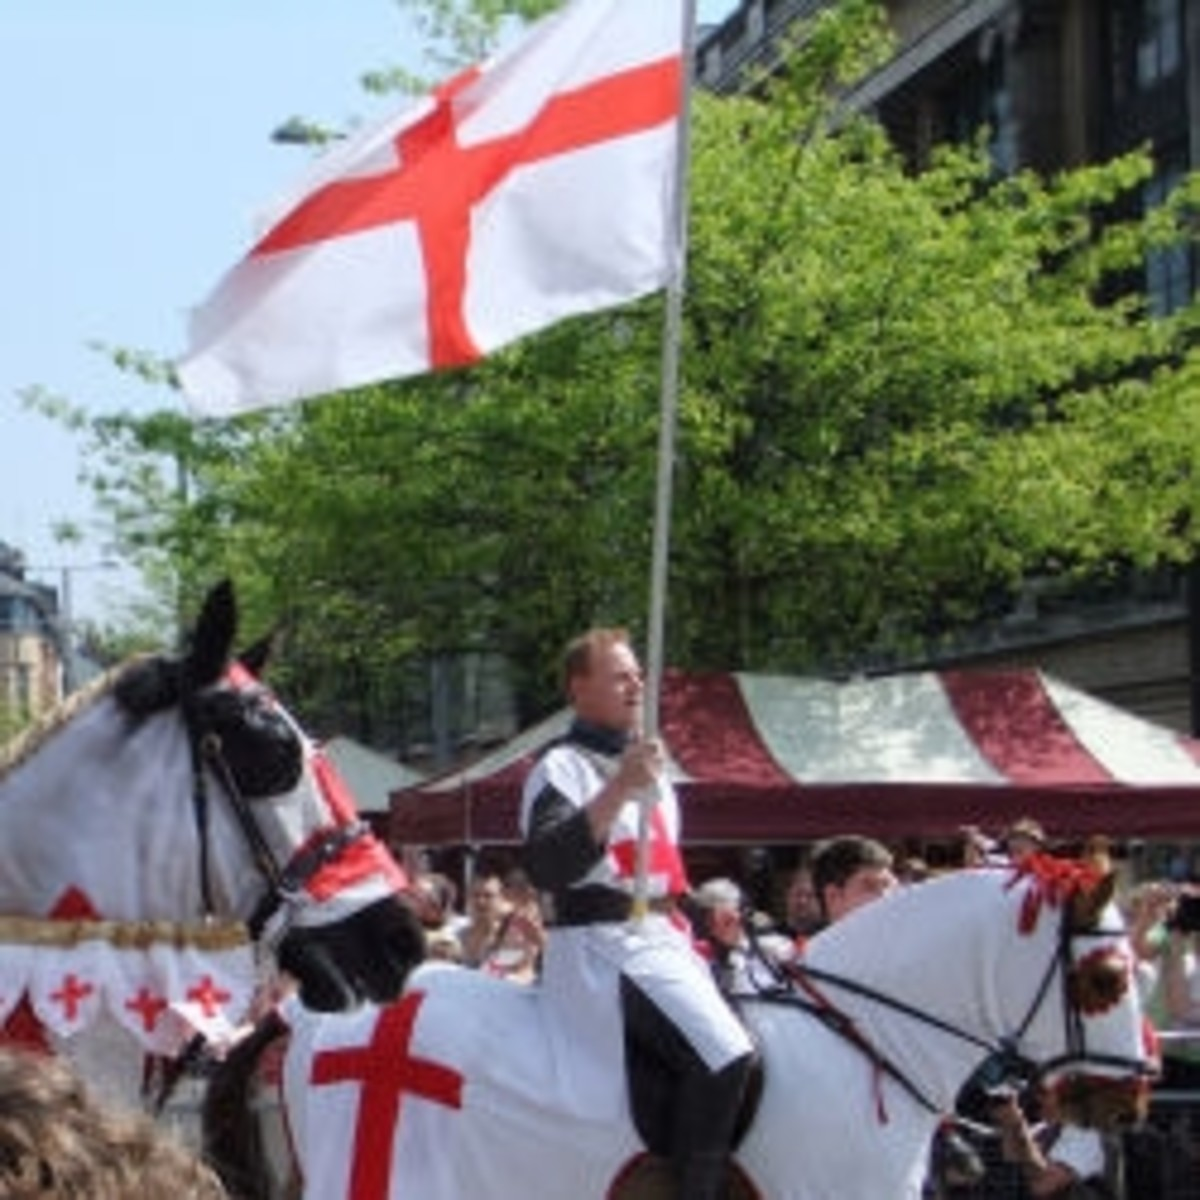 A St George's Day parade in England